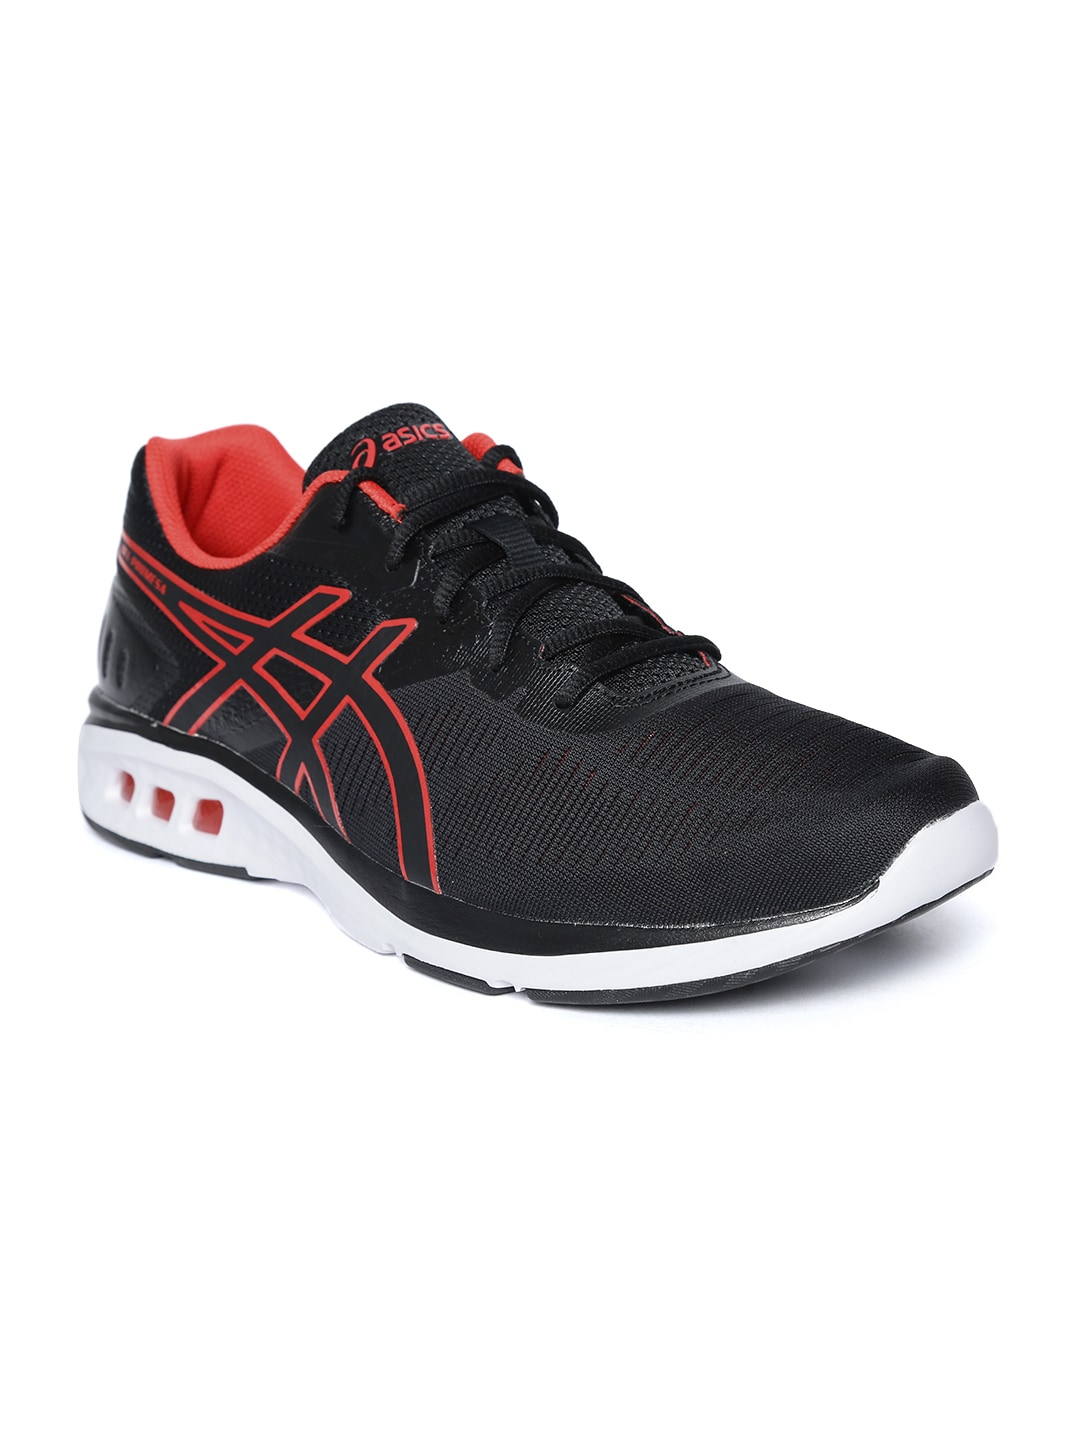 29048ffe15350b Asics Sports Shoes - Buy Asics Sports Shoes Online in India